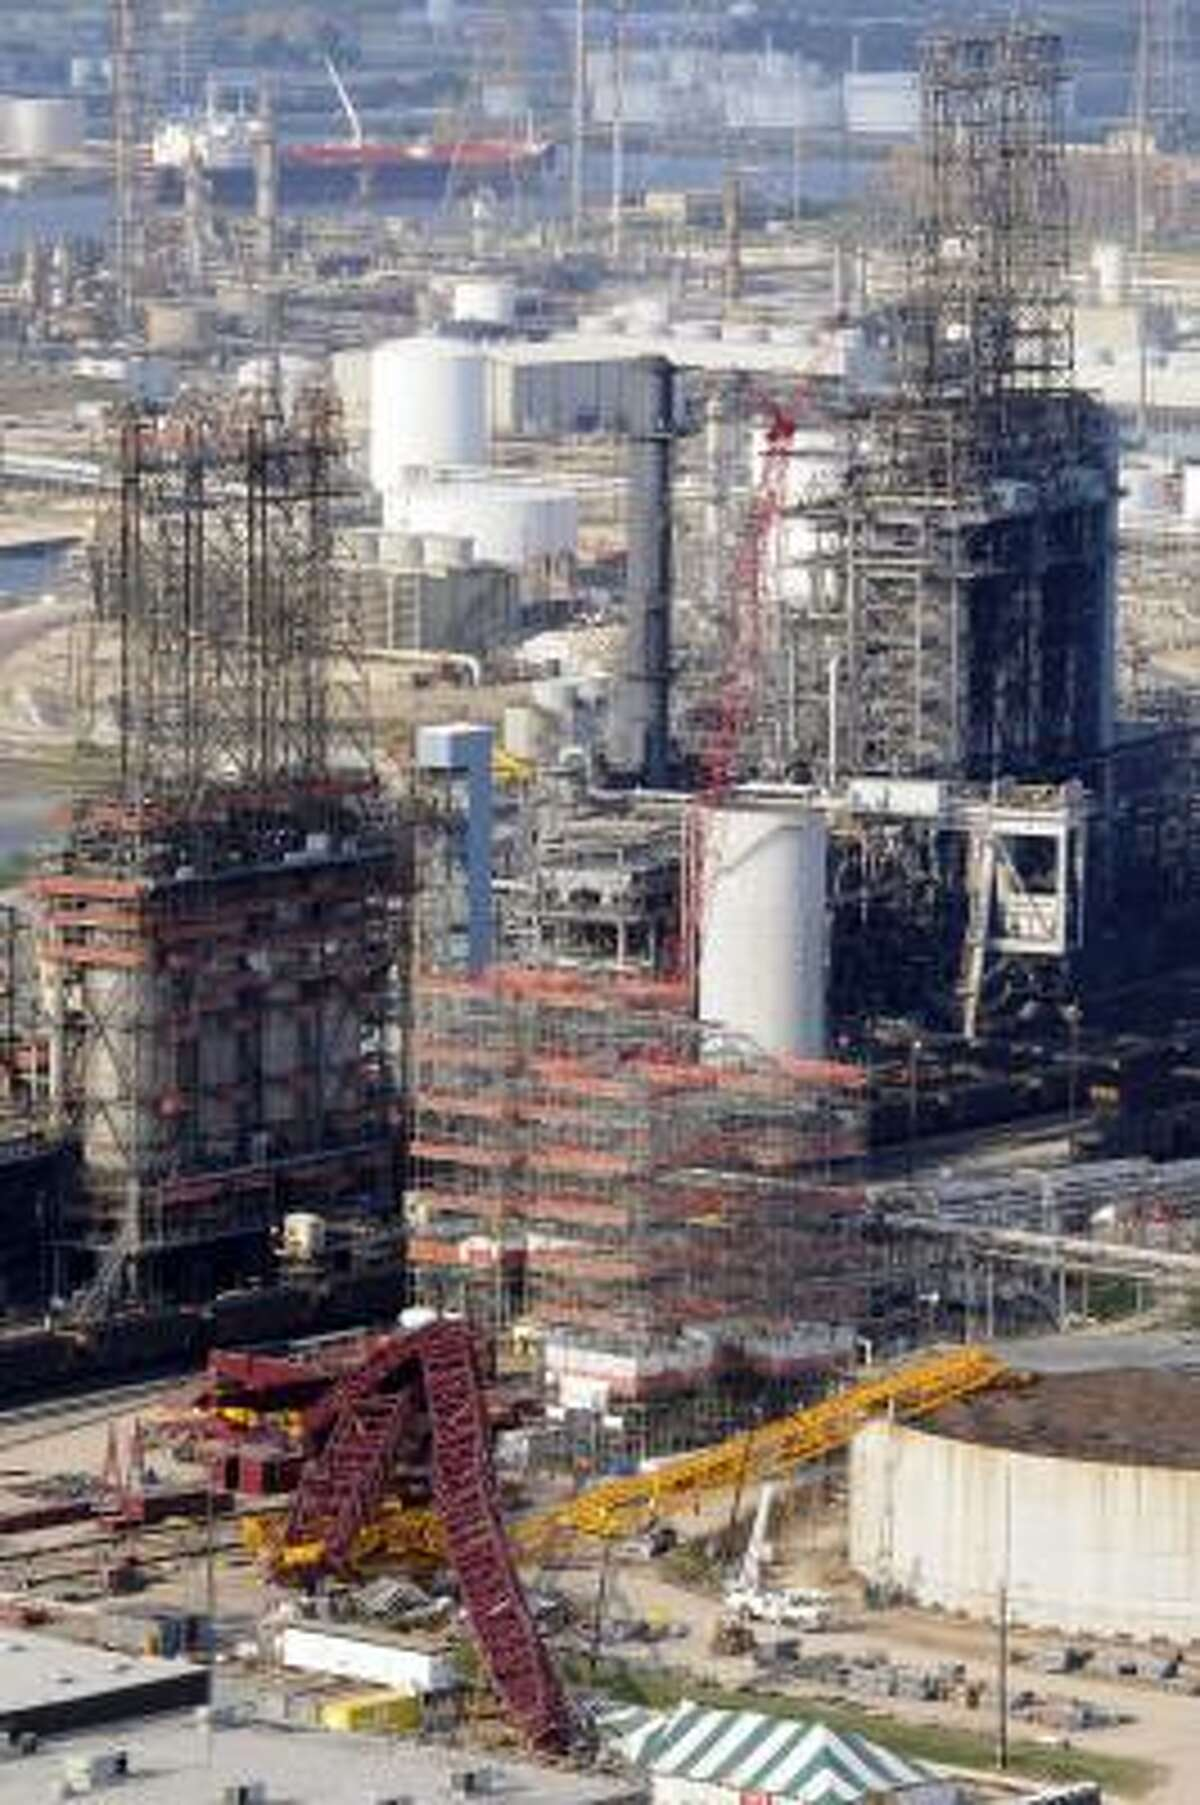 LyondellBasell has reviewed the July accident to determine why it occurred and how it could be prevented from happening again in the industry.